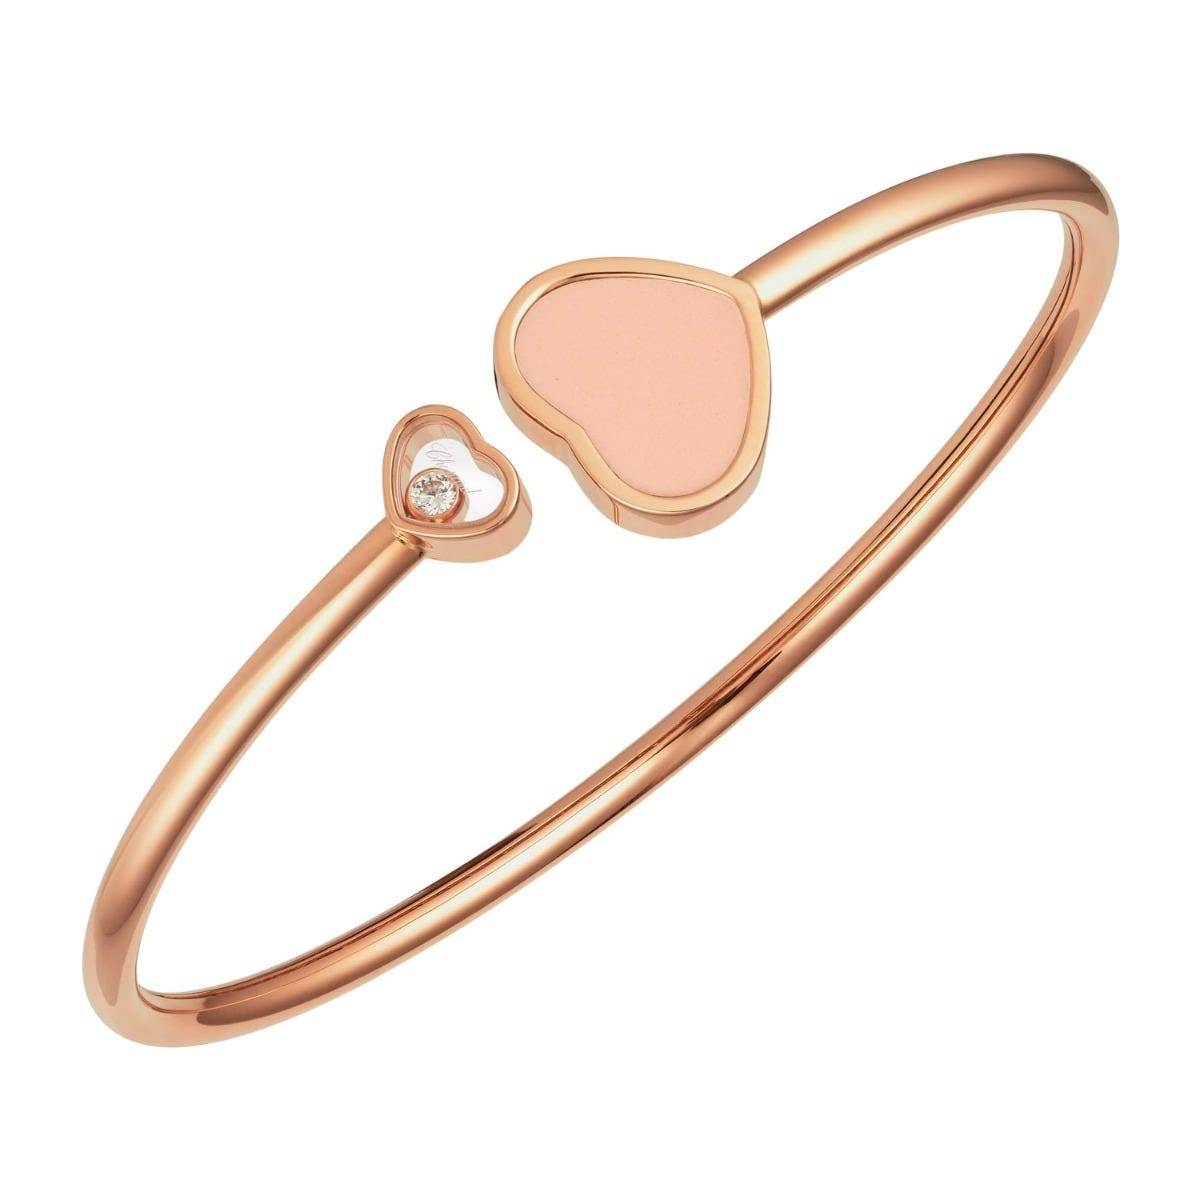 Chopard 18ct Rose Gold Pink Happy Heart Diamond Bangle